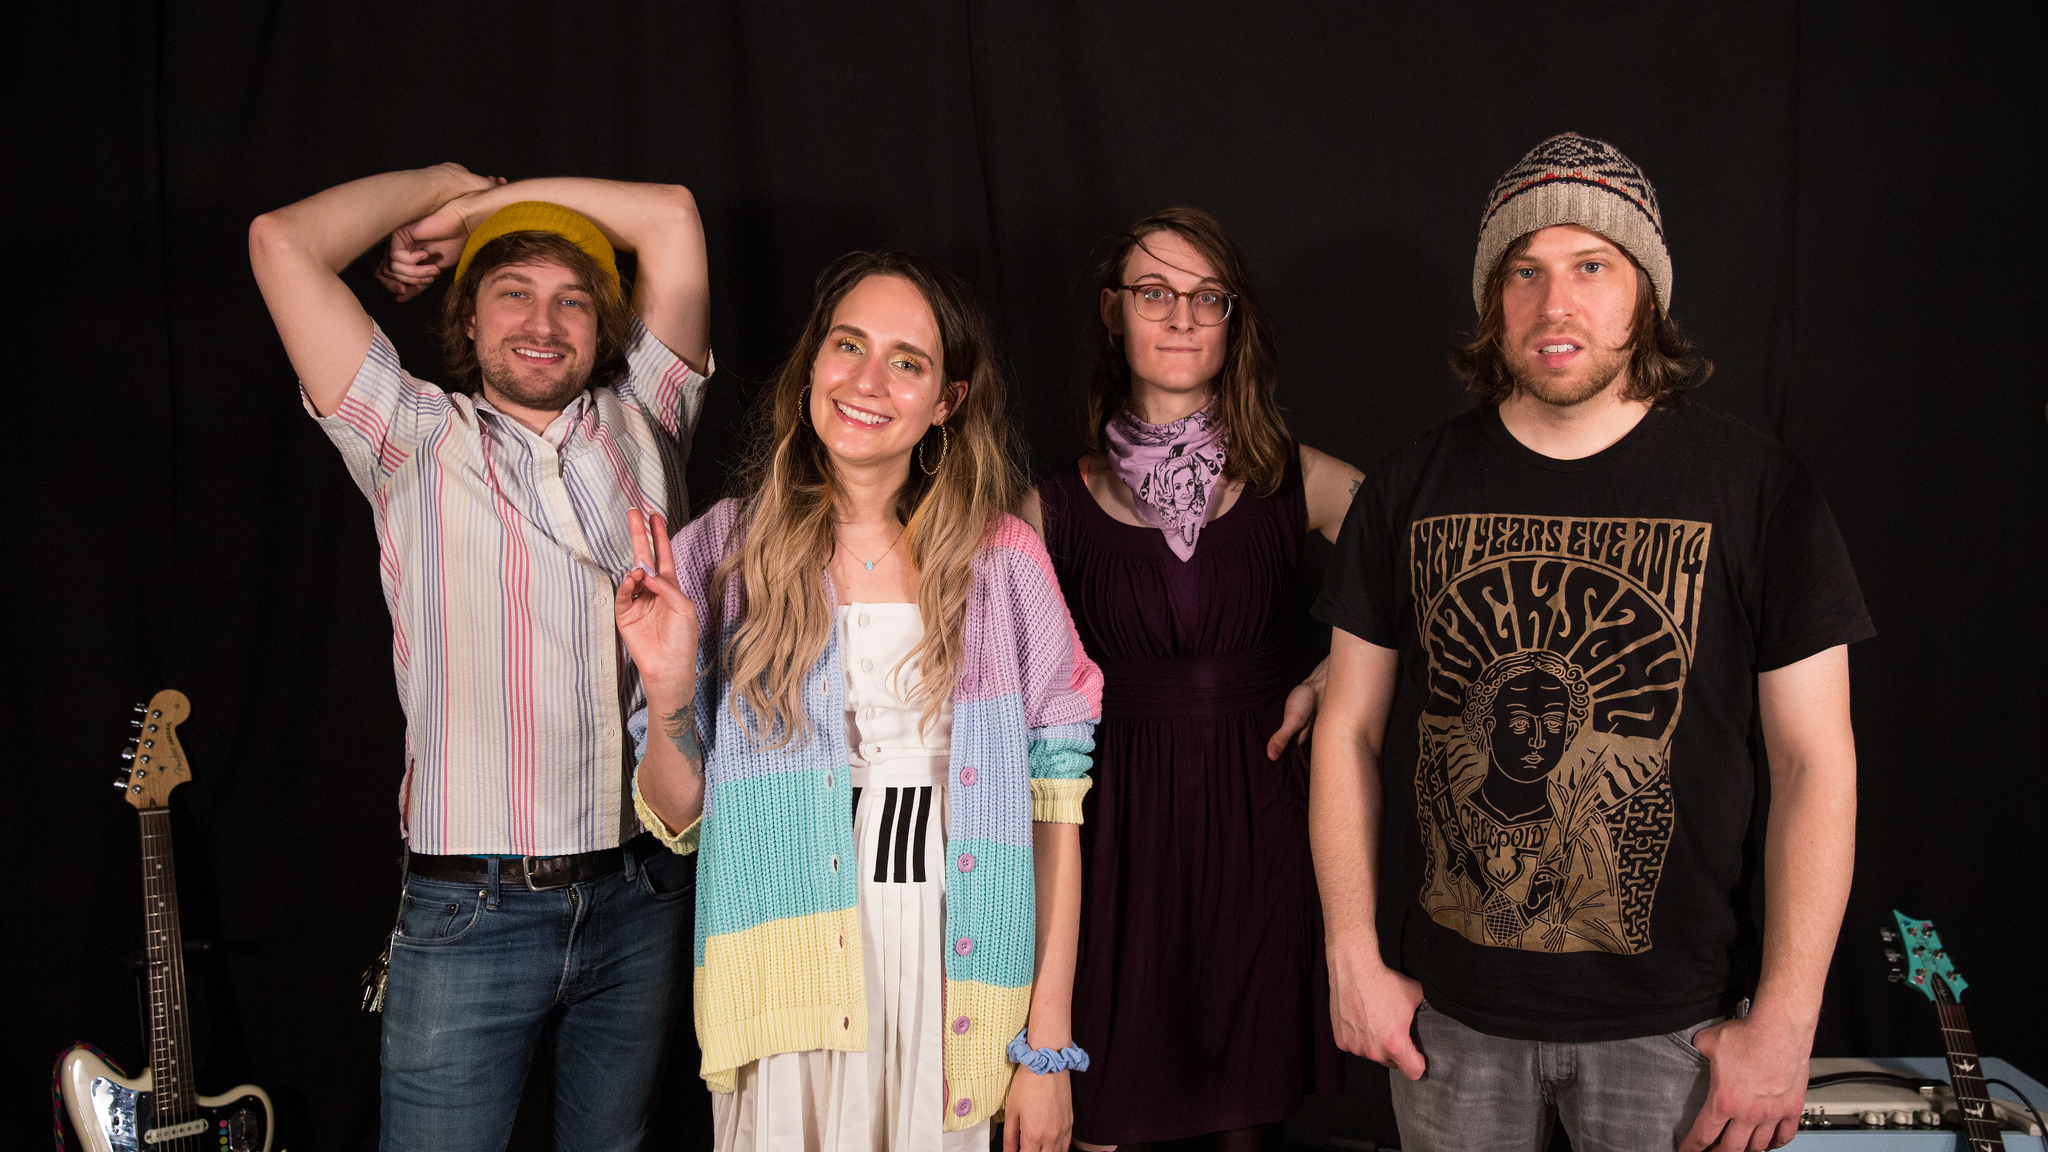 Speedy Ortiz at WFUV